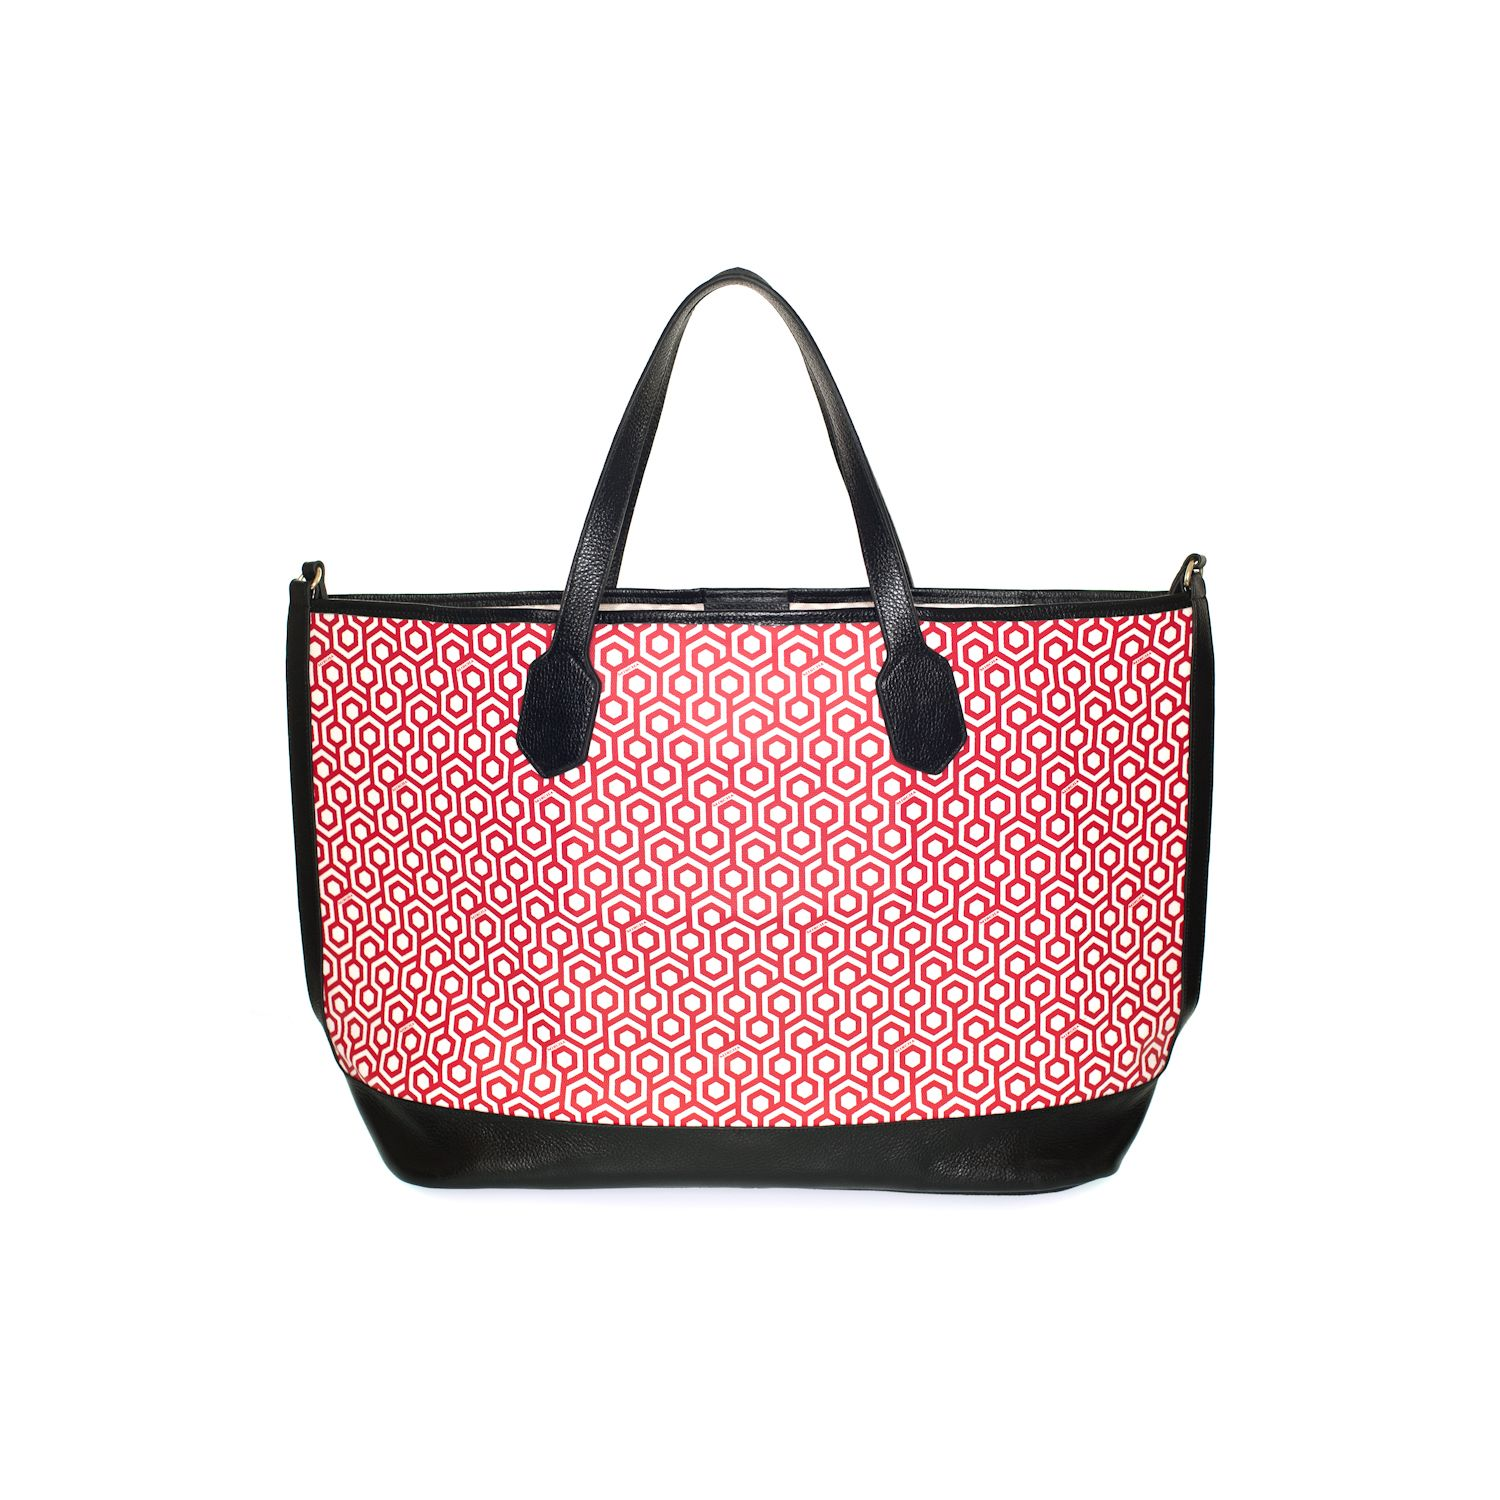 SS2012 Bucket Tote - Red